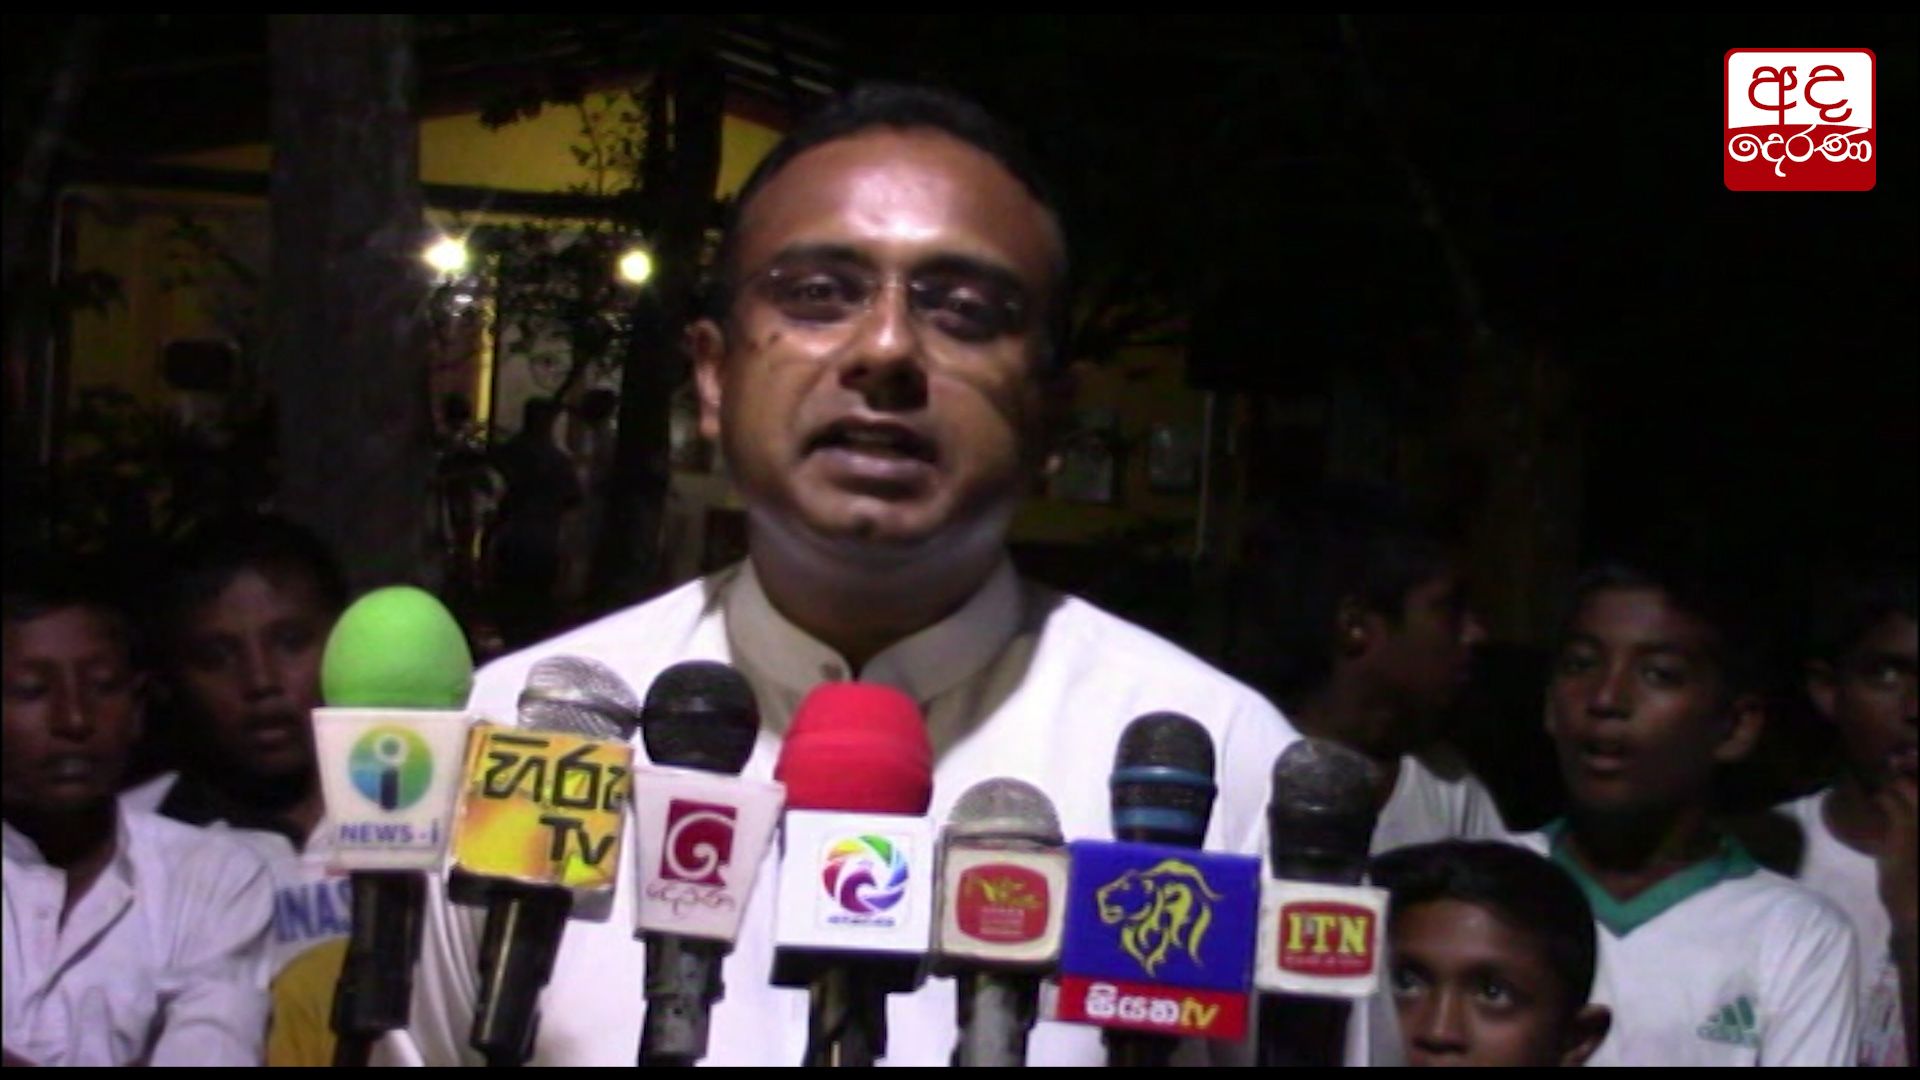 Will present a candidate the whole country likes - Manusha